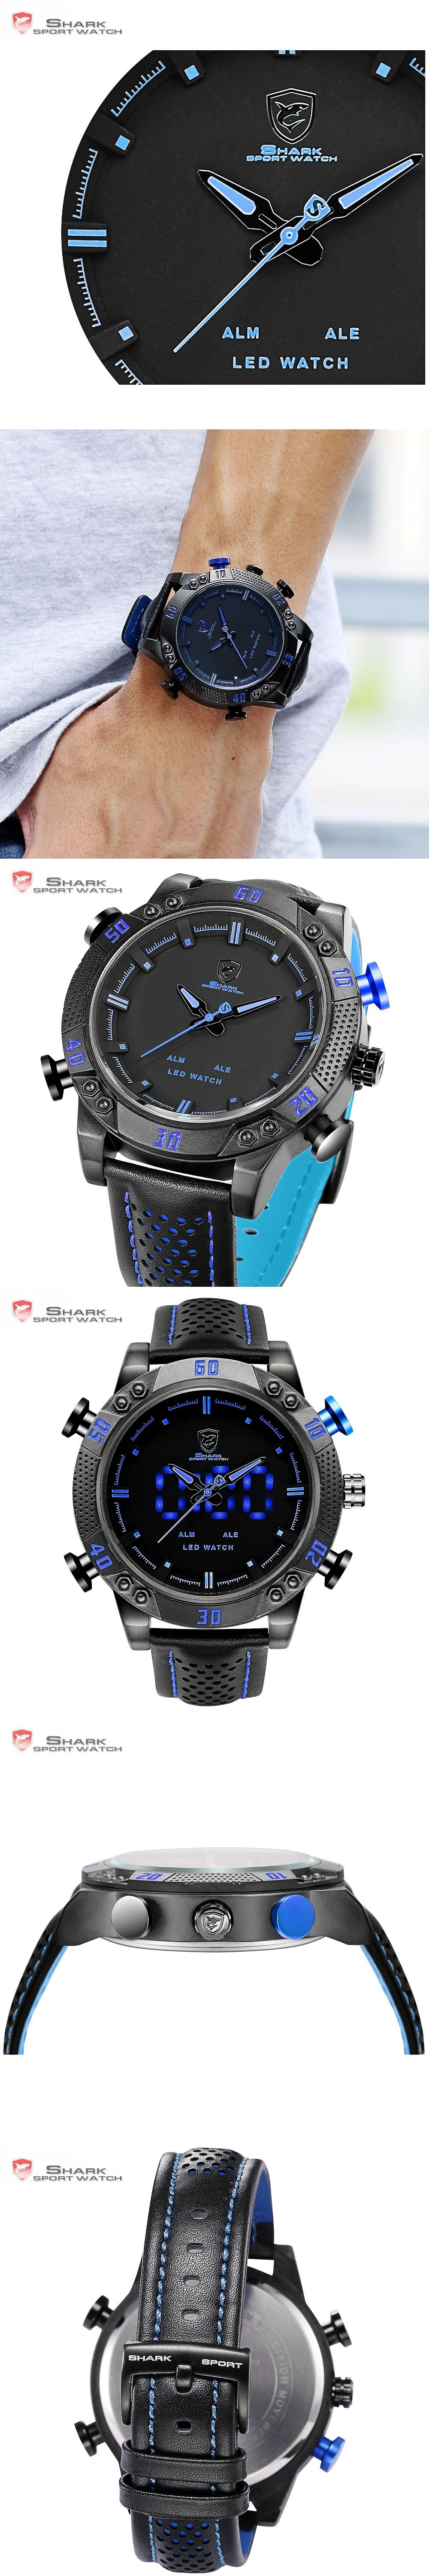 7c437641c89 Kitefin Shark Sport Watch Blue LED Back Light Auto Date Display Leather  Strap Quartz Digital Outdoor